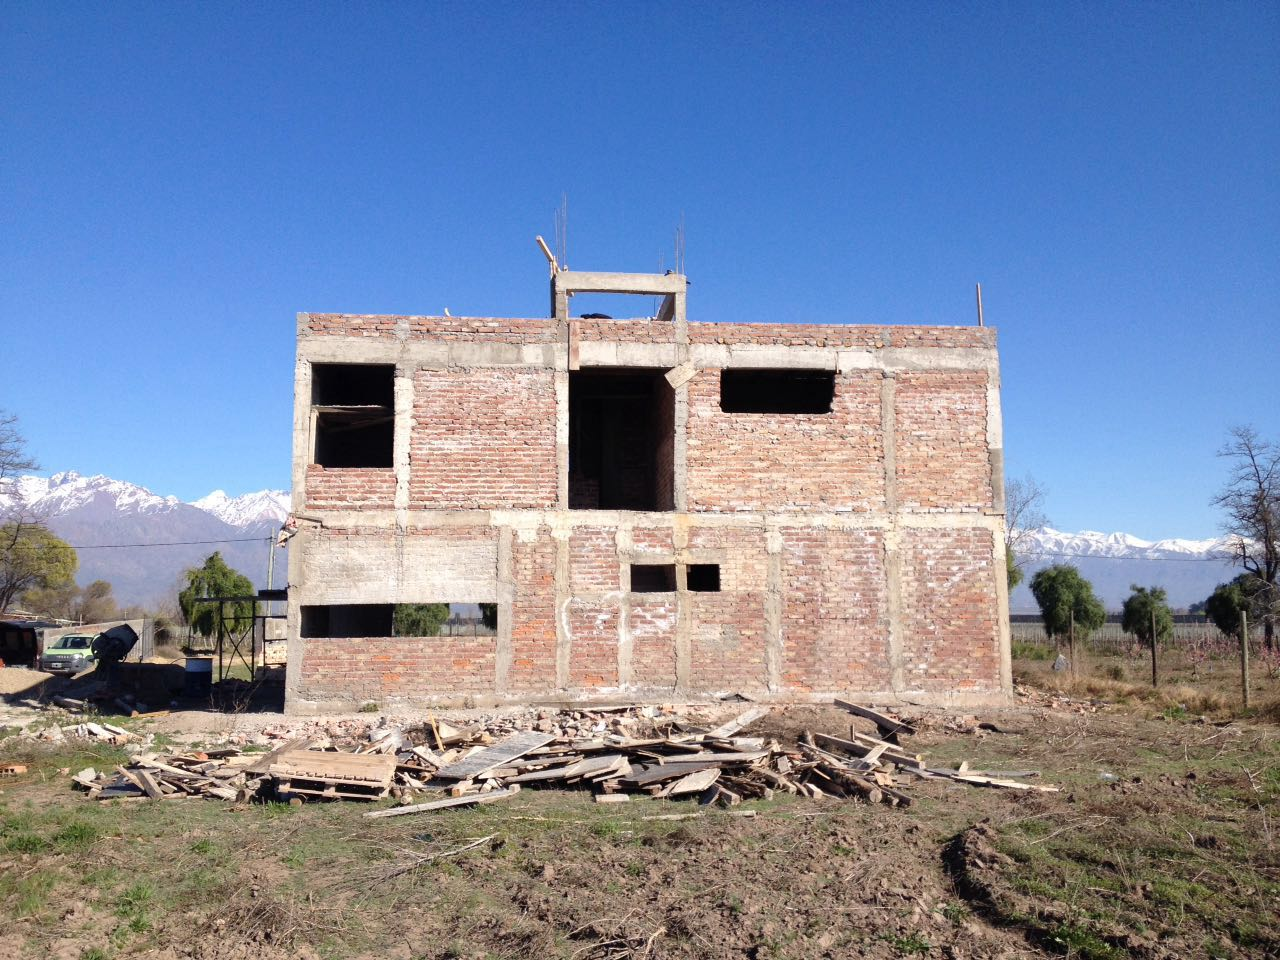 Property for Sale, Argentina, Cuyo, Vista Flores, Land & Villa 20483